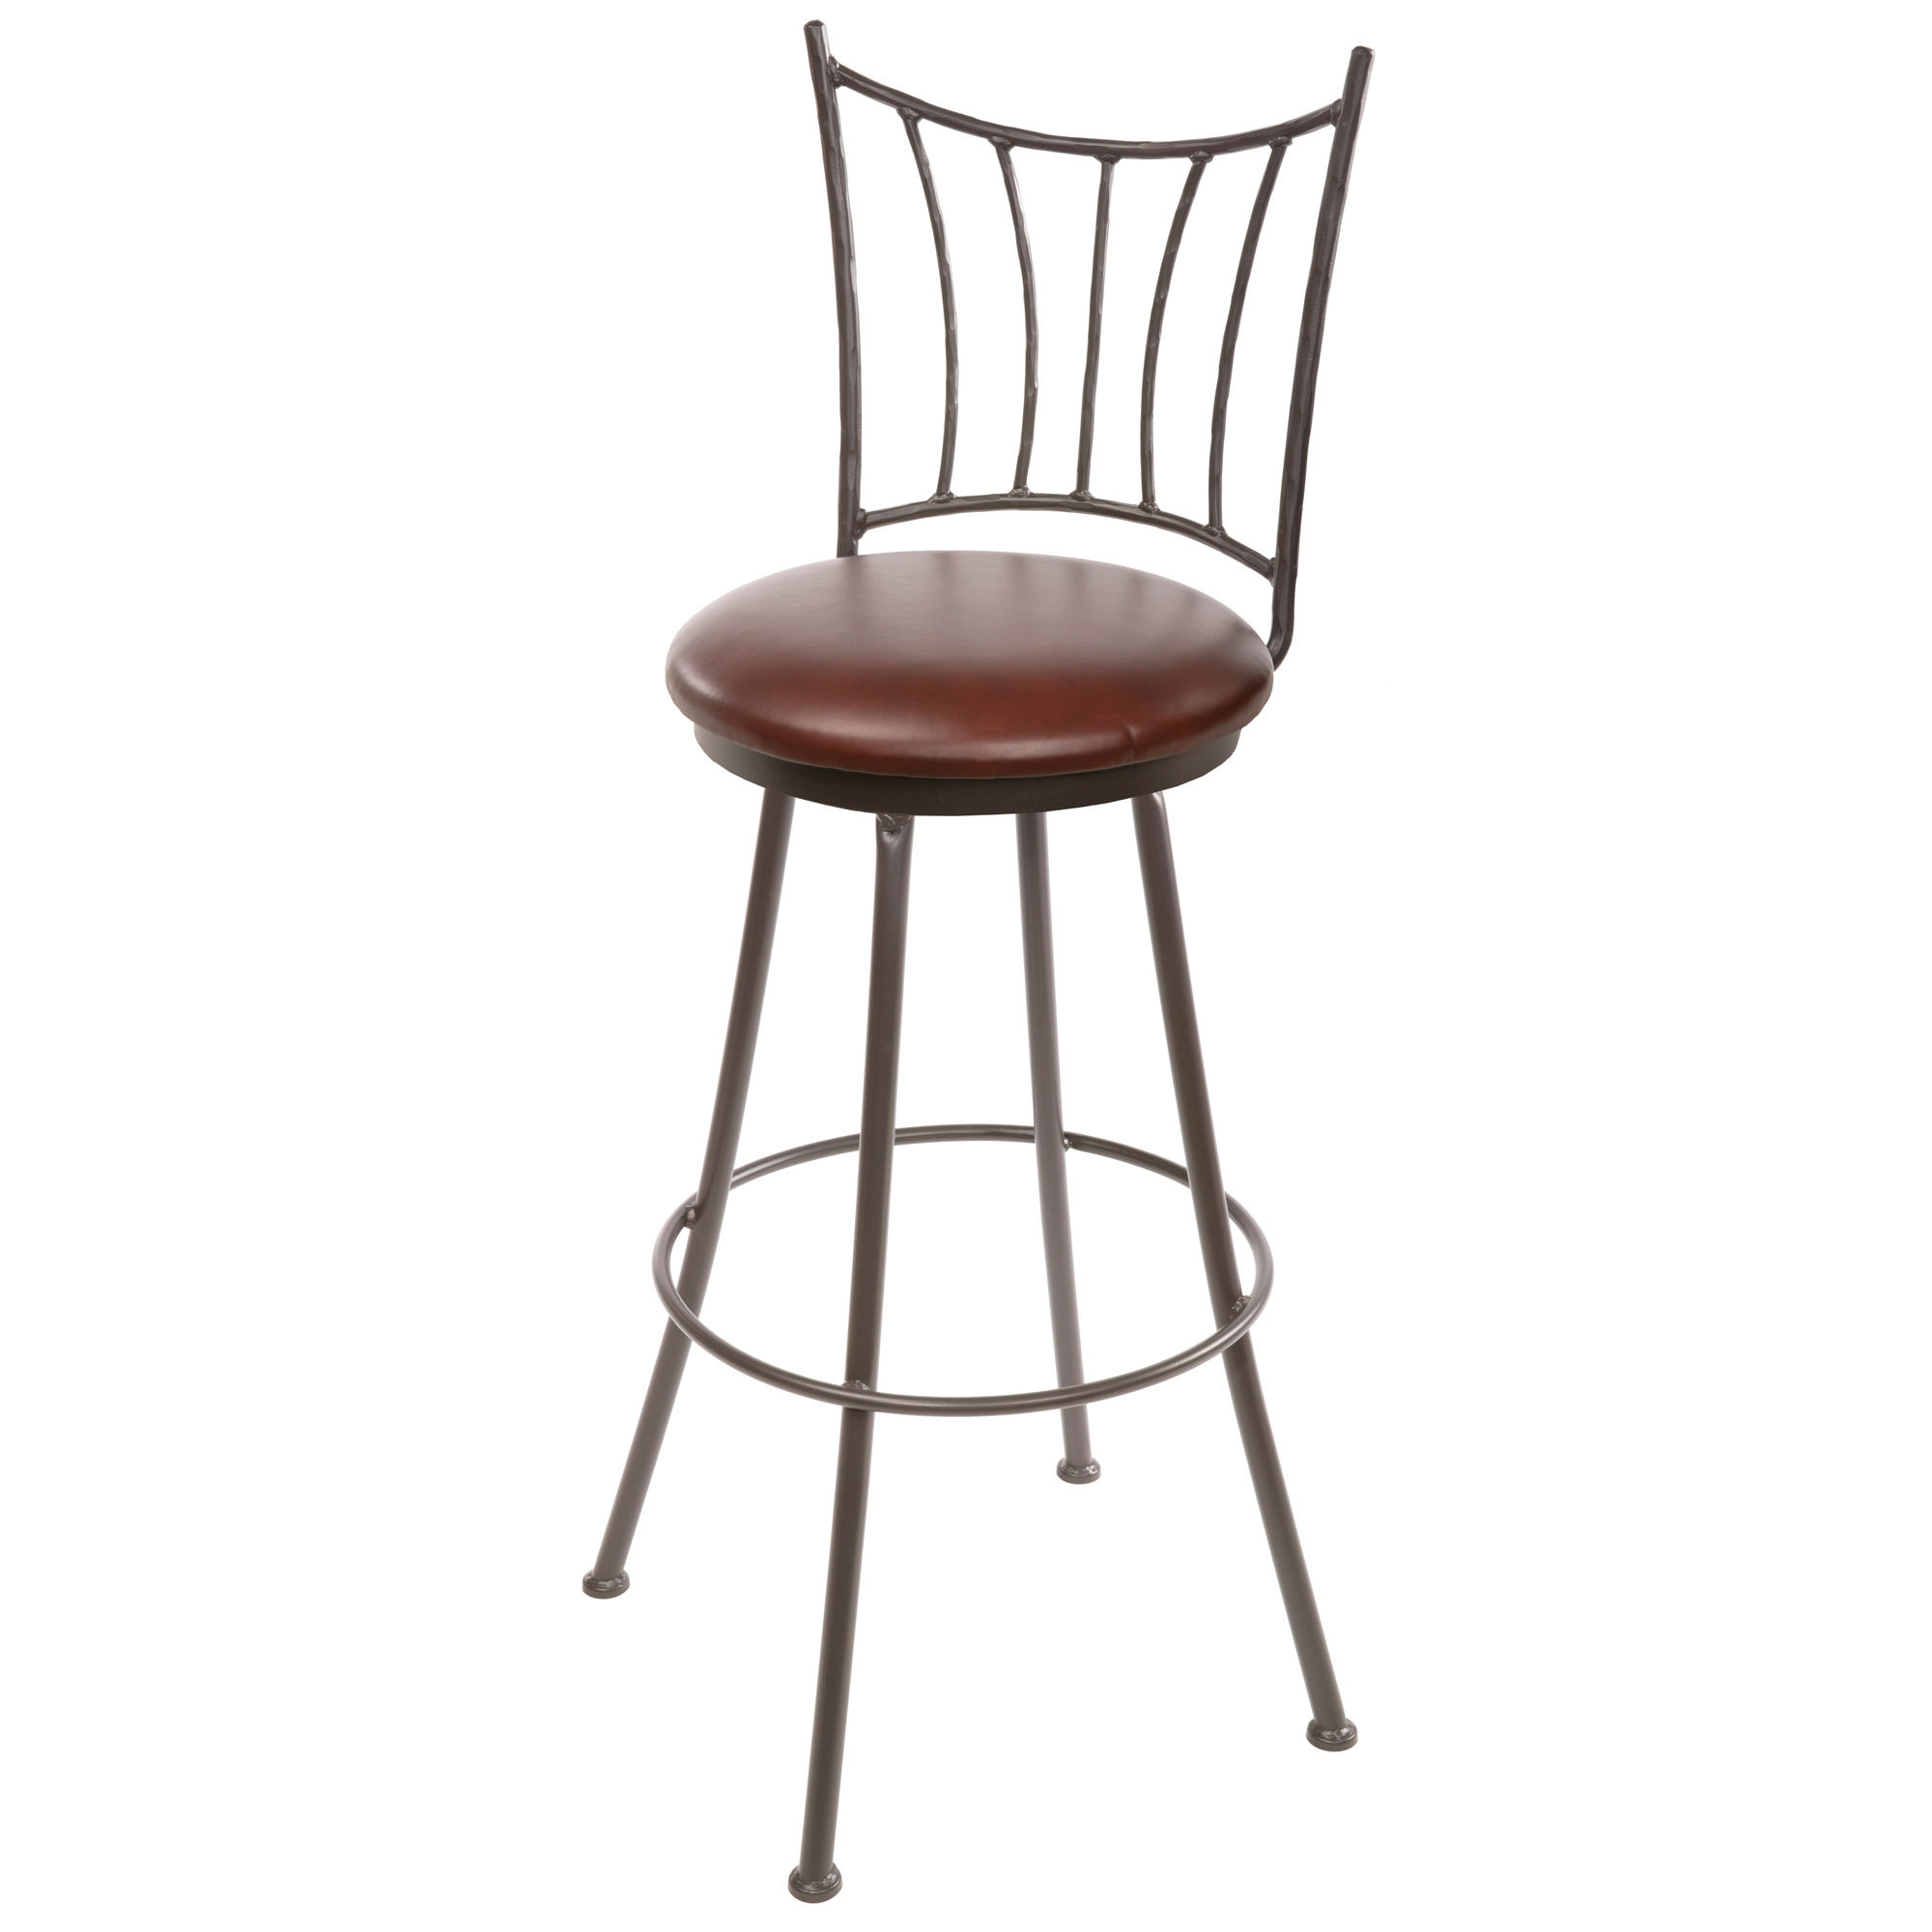 Ranch Wrought Iron Counter Stool 25 In Seat Height